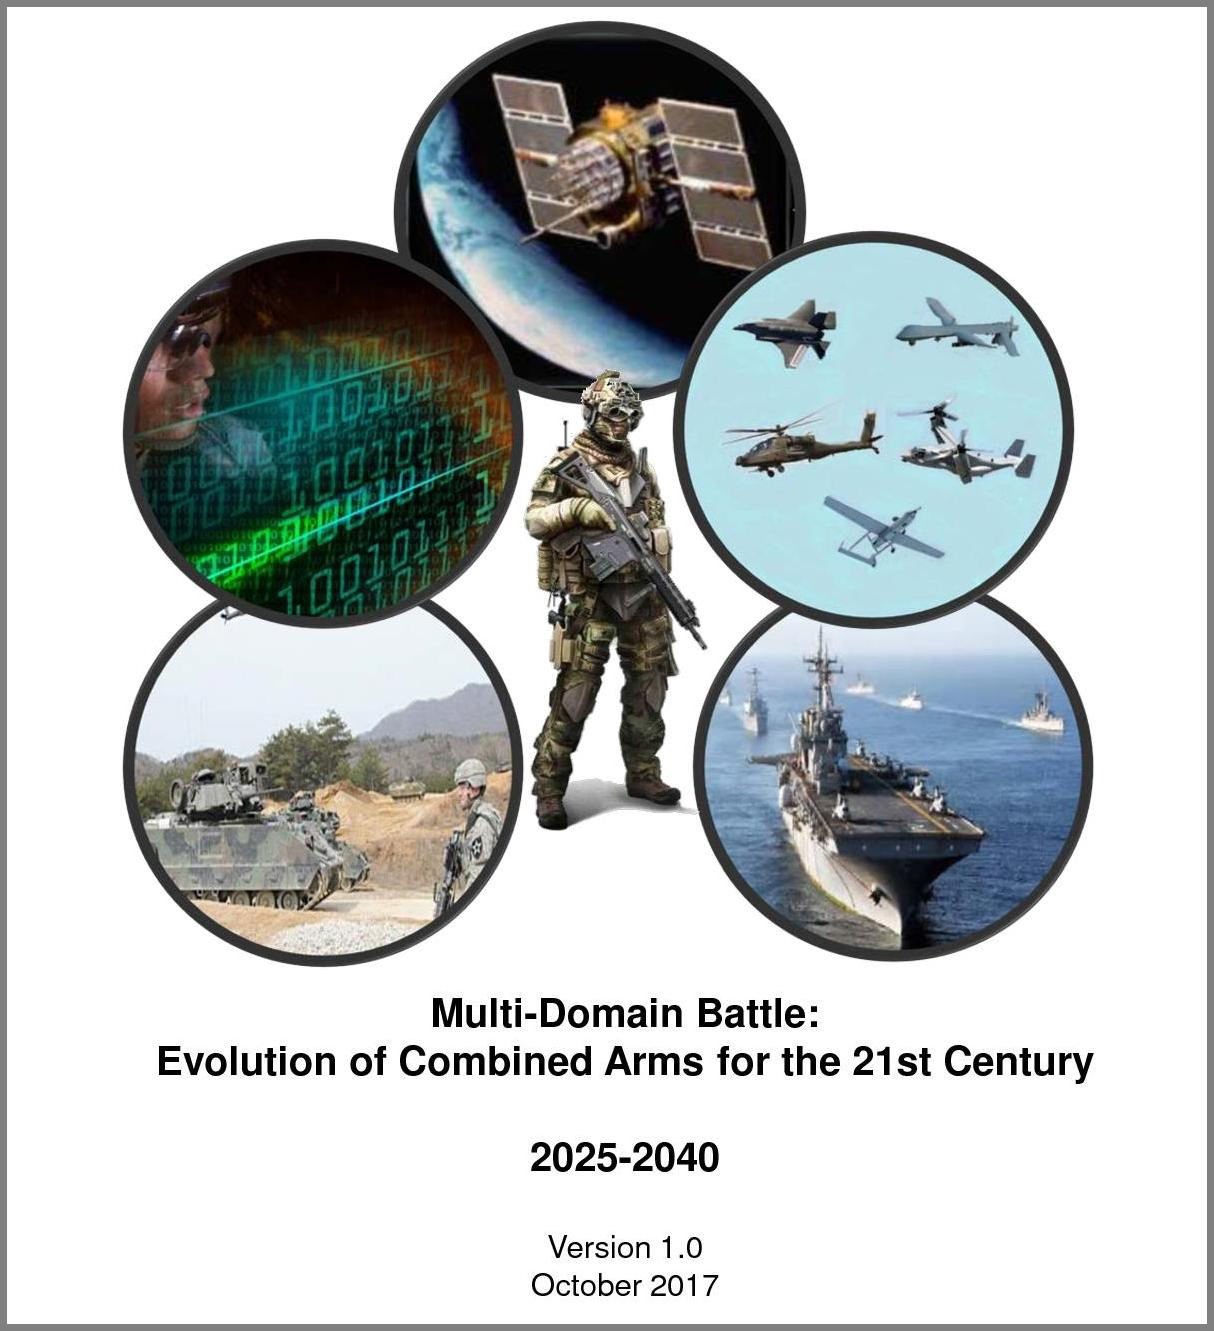 Доклад «Multi-Domain Battle: Evolution of Combined Arms for the 21st Century 2025-2040».